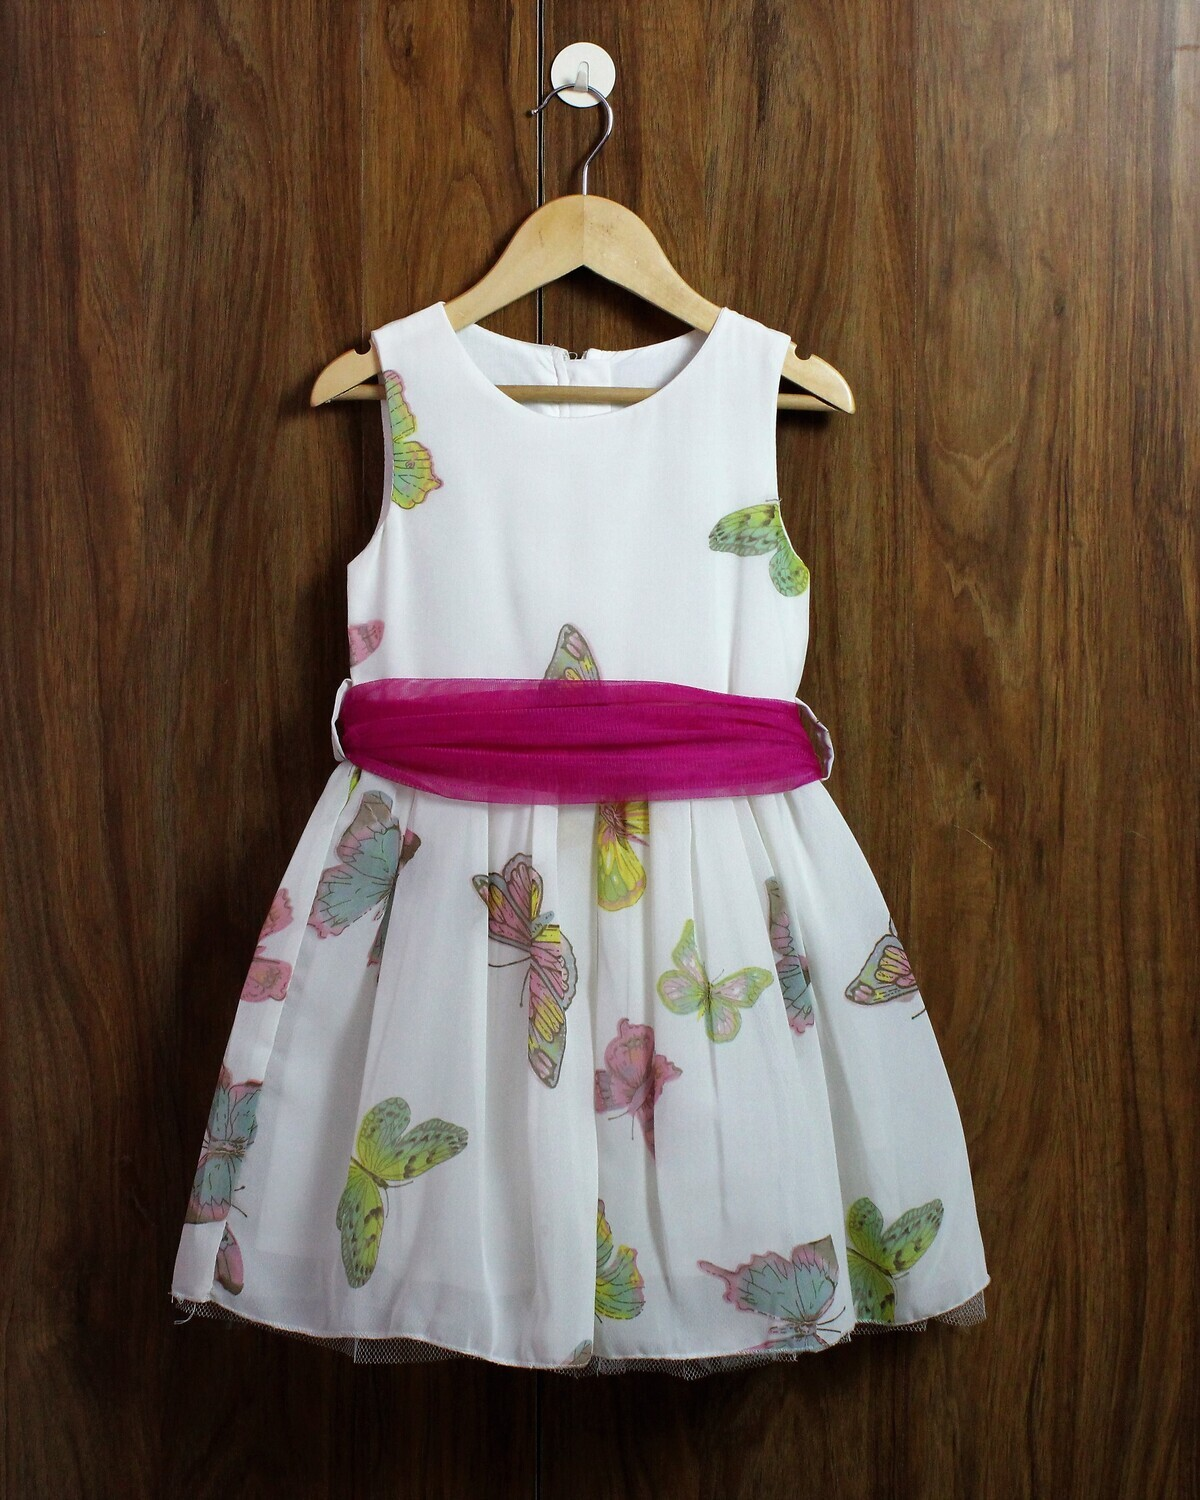 Butterfly party frocks(4 to 12 Yrs.)